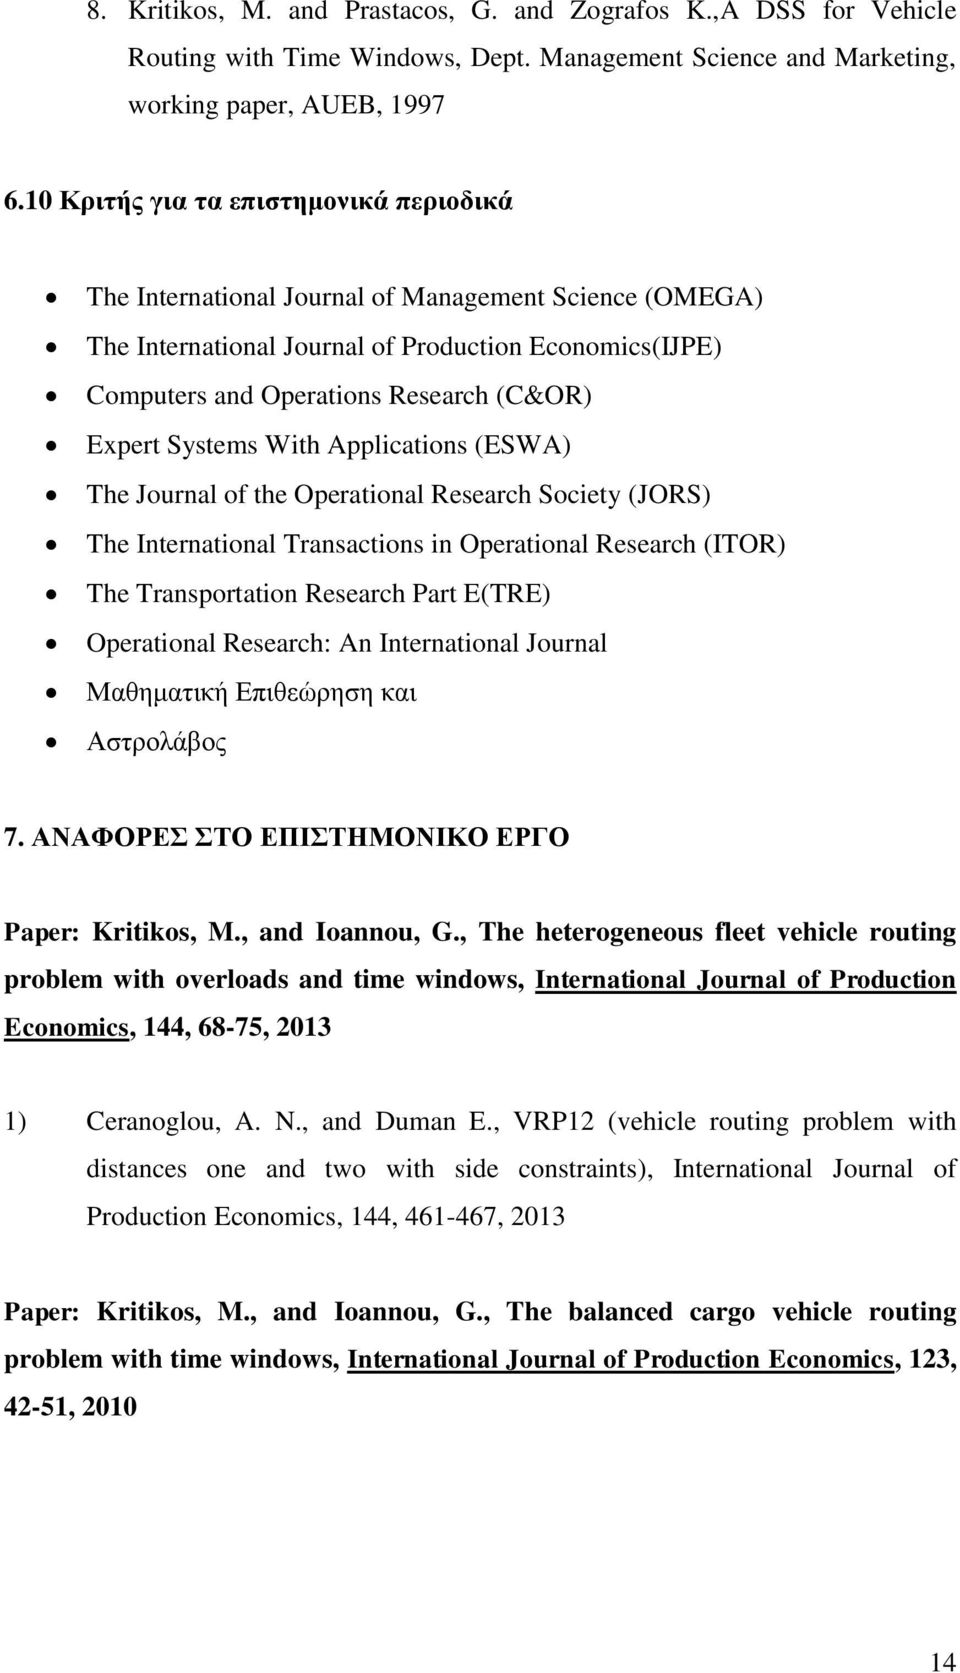 Systems With Applications (ESWA) The Journal of the Operational Research Society (JORS) The International Transactions in Operational Research (ITOR) The Transportation Research Part E(TRE)